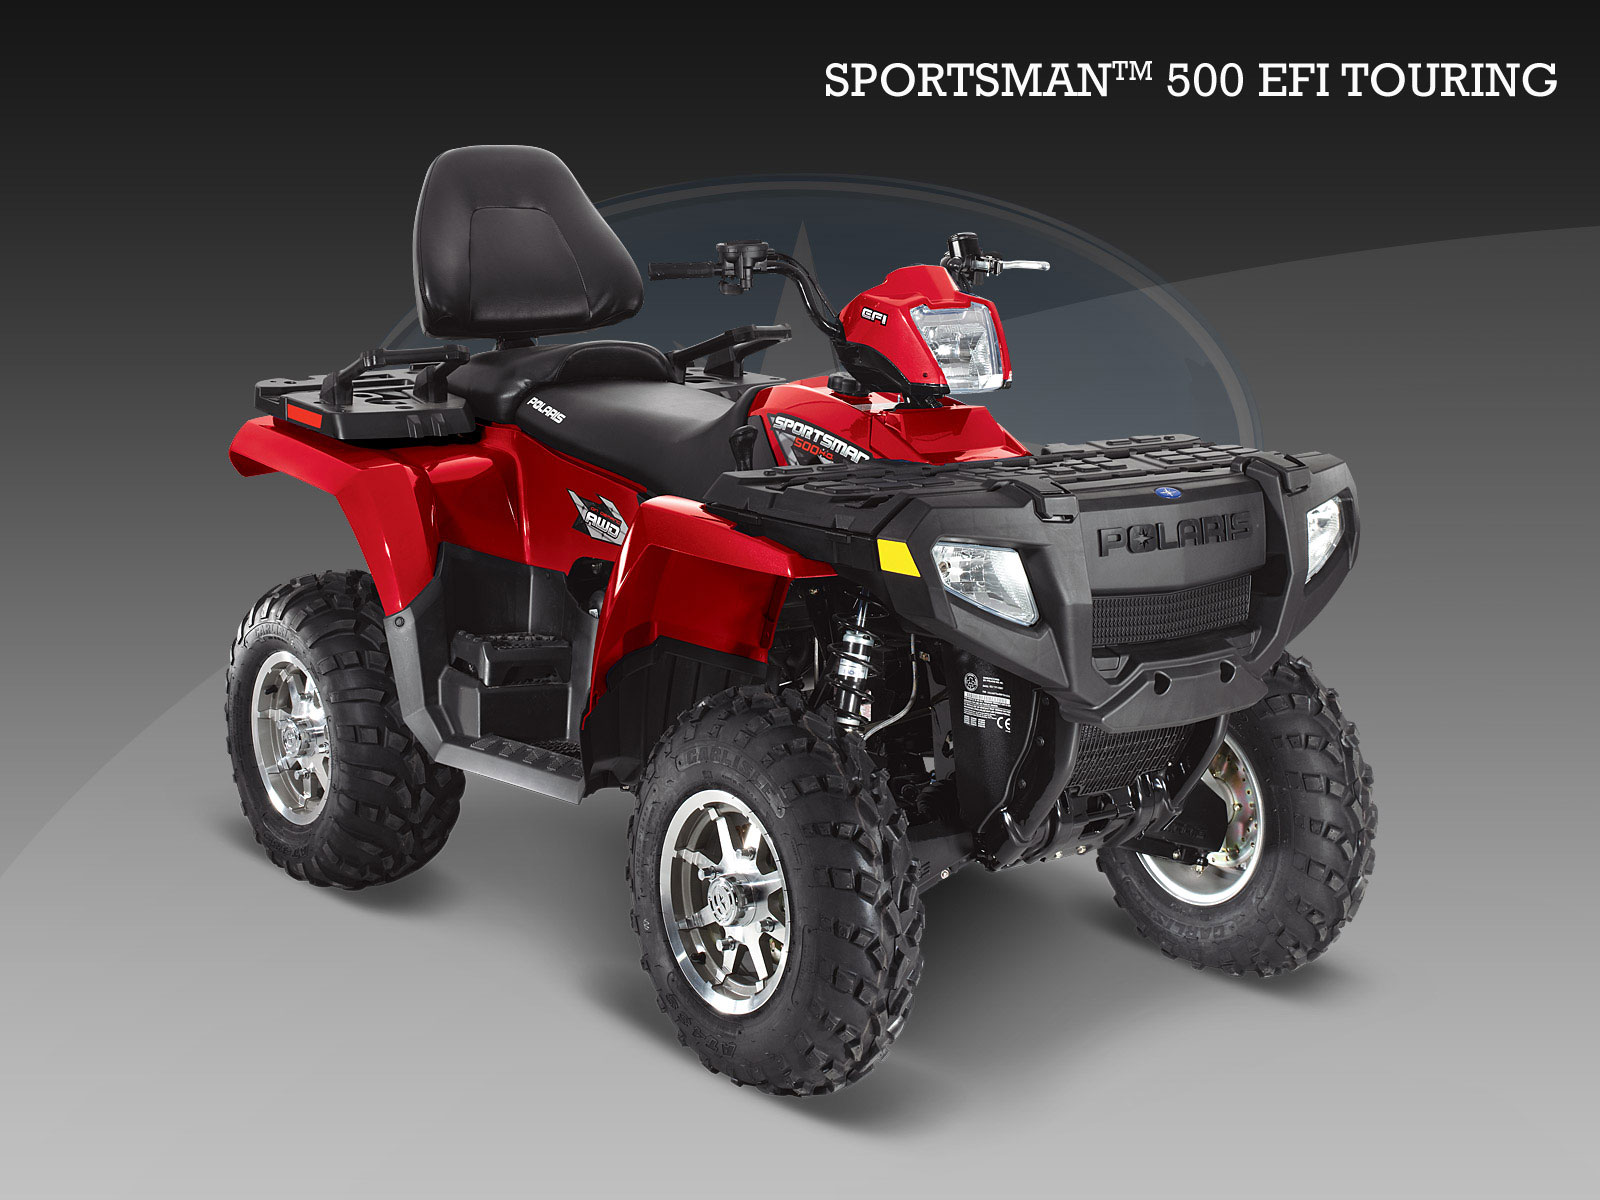 2009 polaris sportsman 500 efi touring. Black Bedroom Furniture Sets. Home Design Ideas